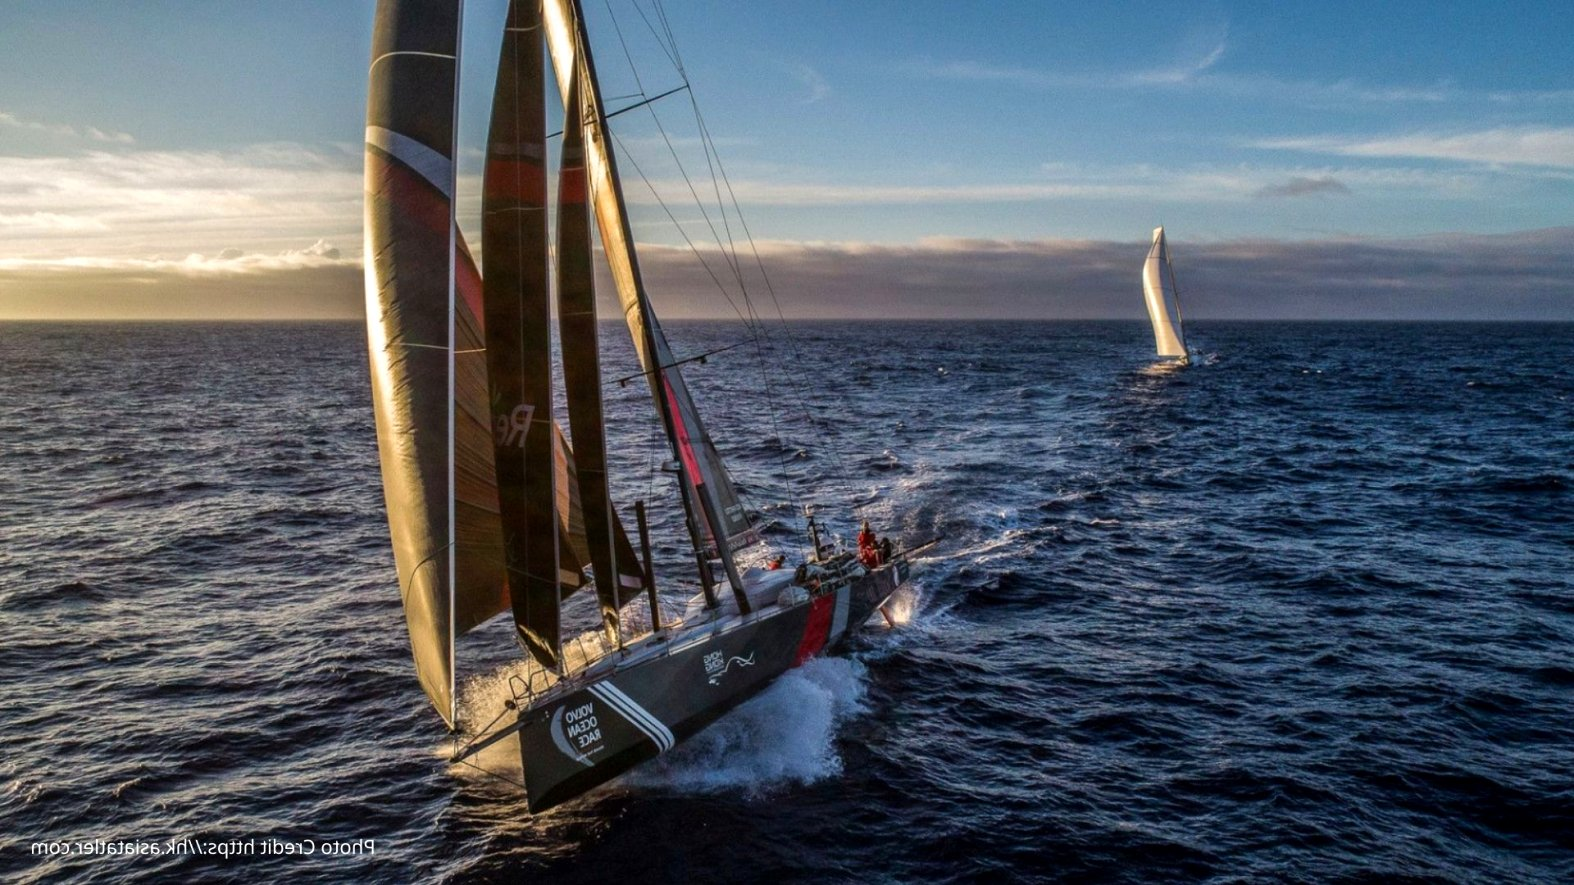 volvo yacht race 2020 Price and Review